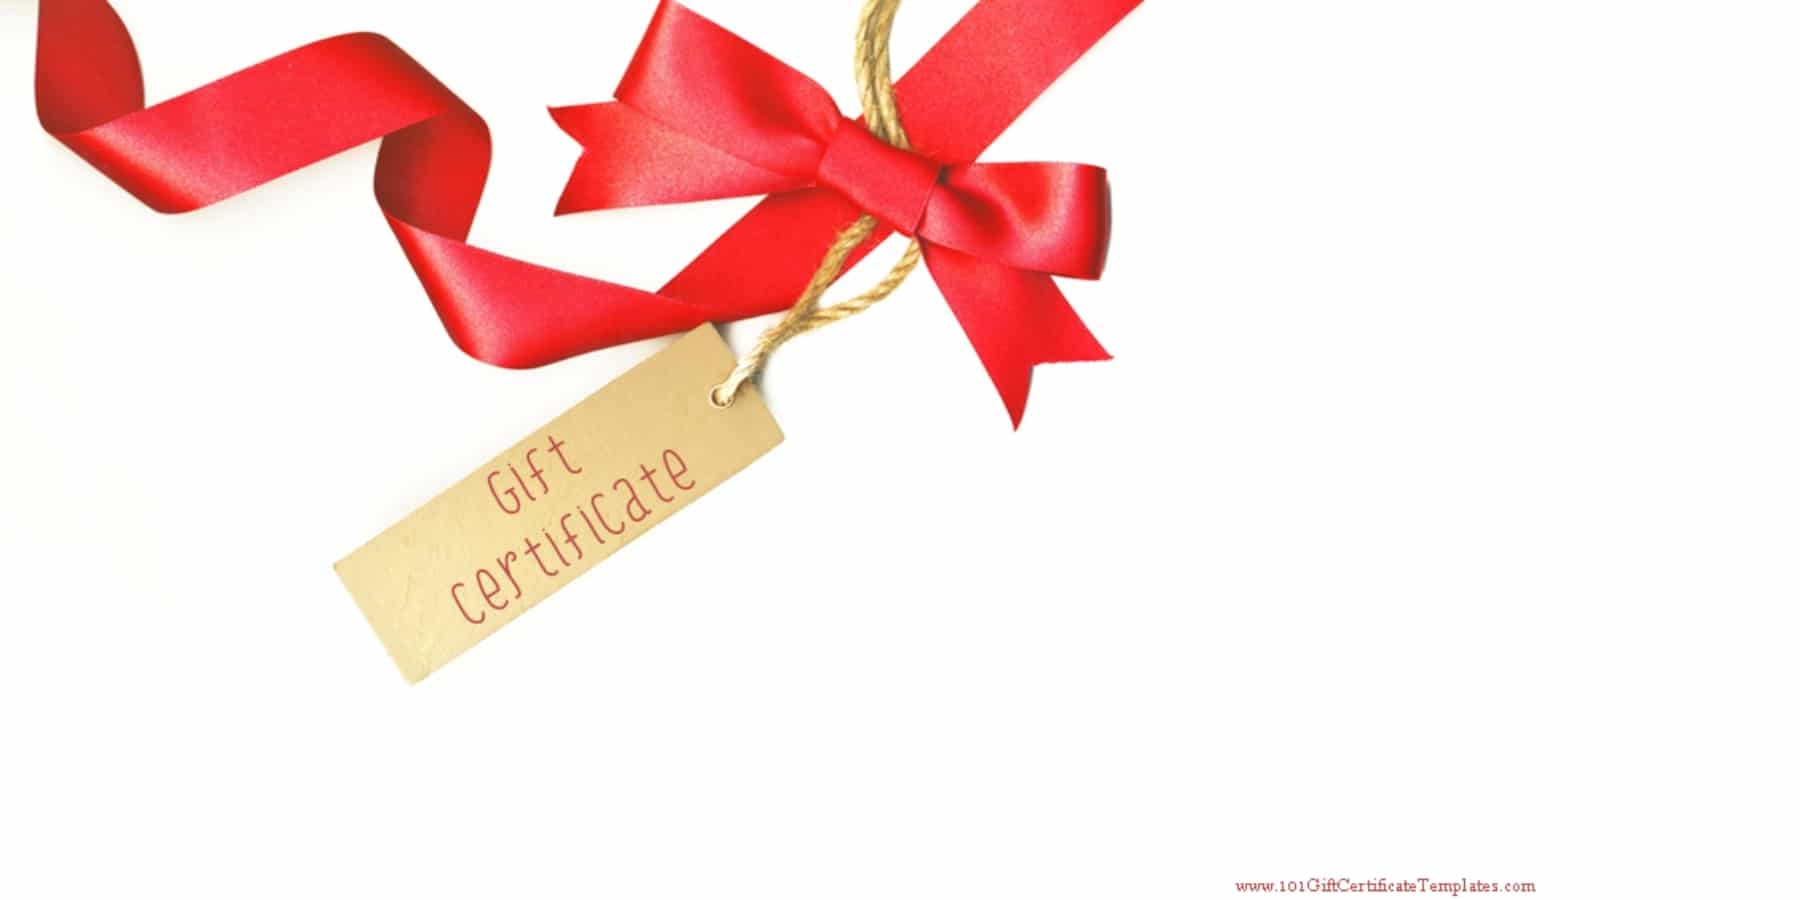 gift voucher templates free downloads